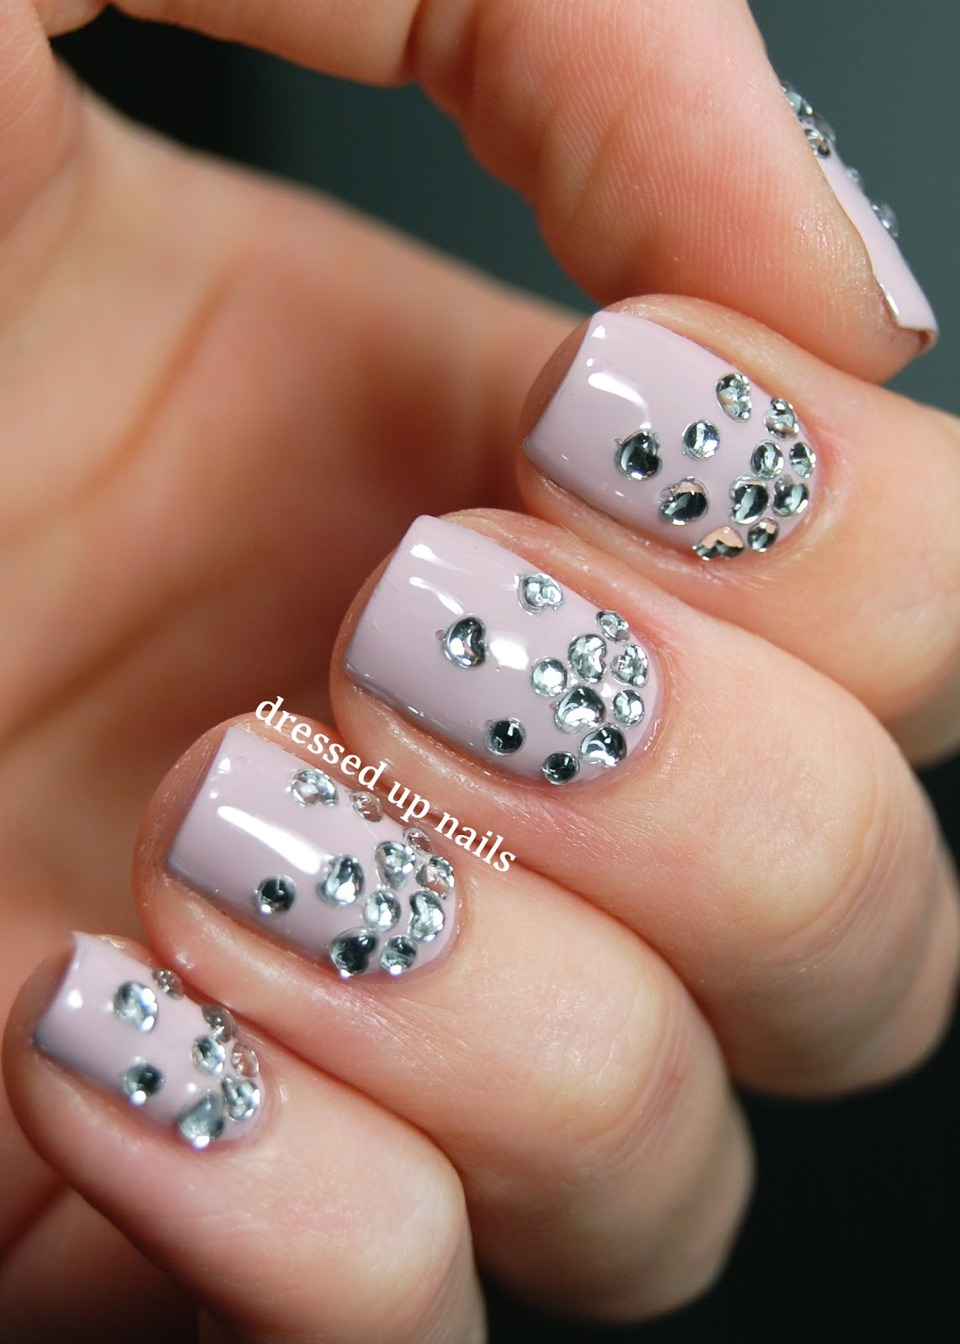 Gems always make your nails look stylish, along with this colour they look fab!